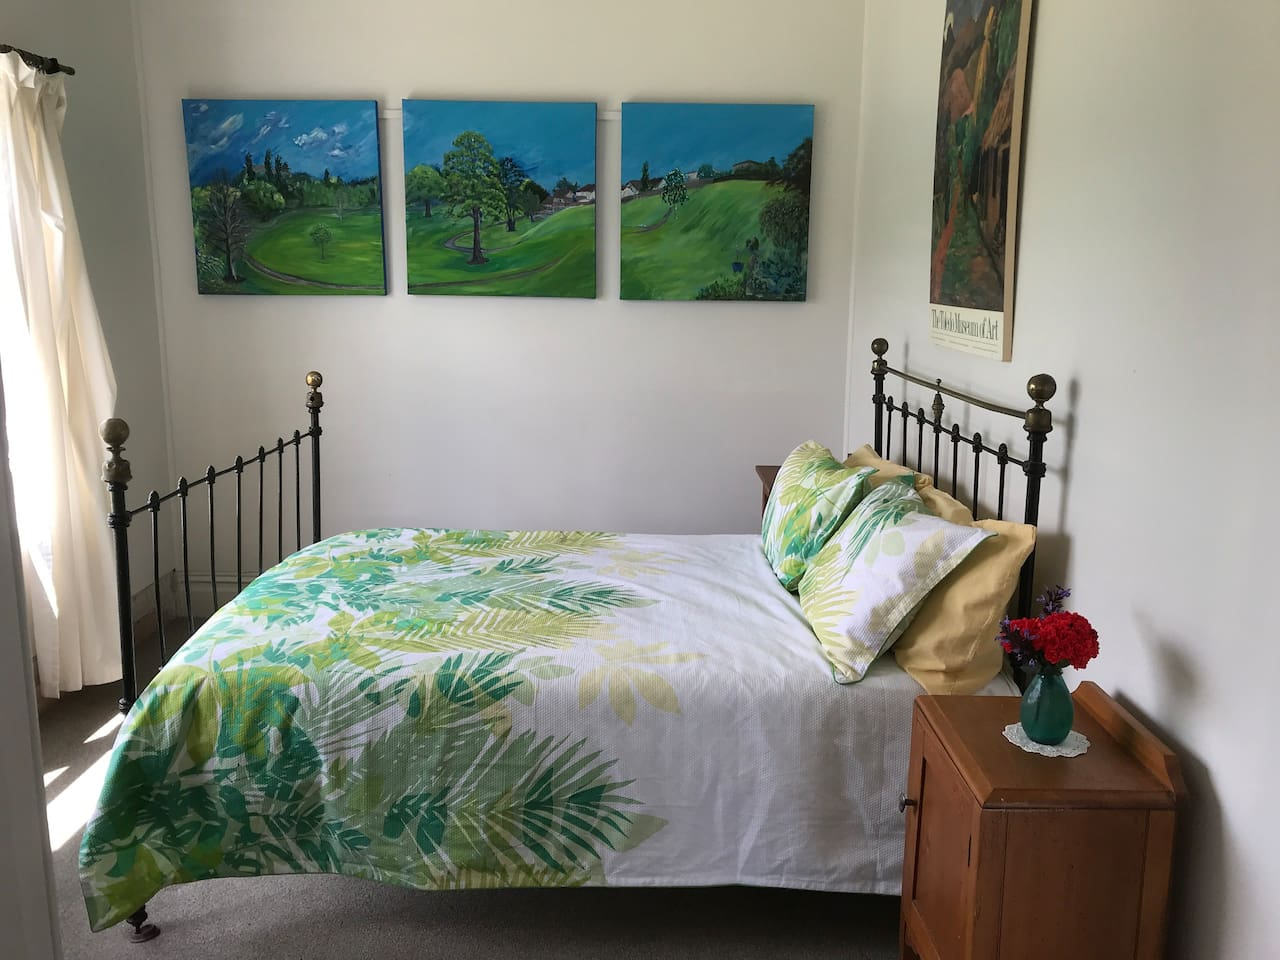 Our double room looks north onto the Waipu Caves Reserve. It features original artwork